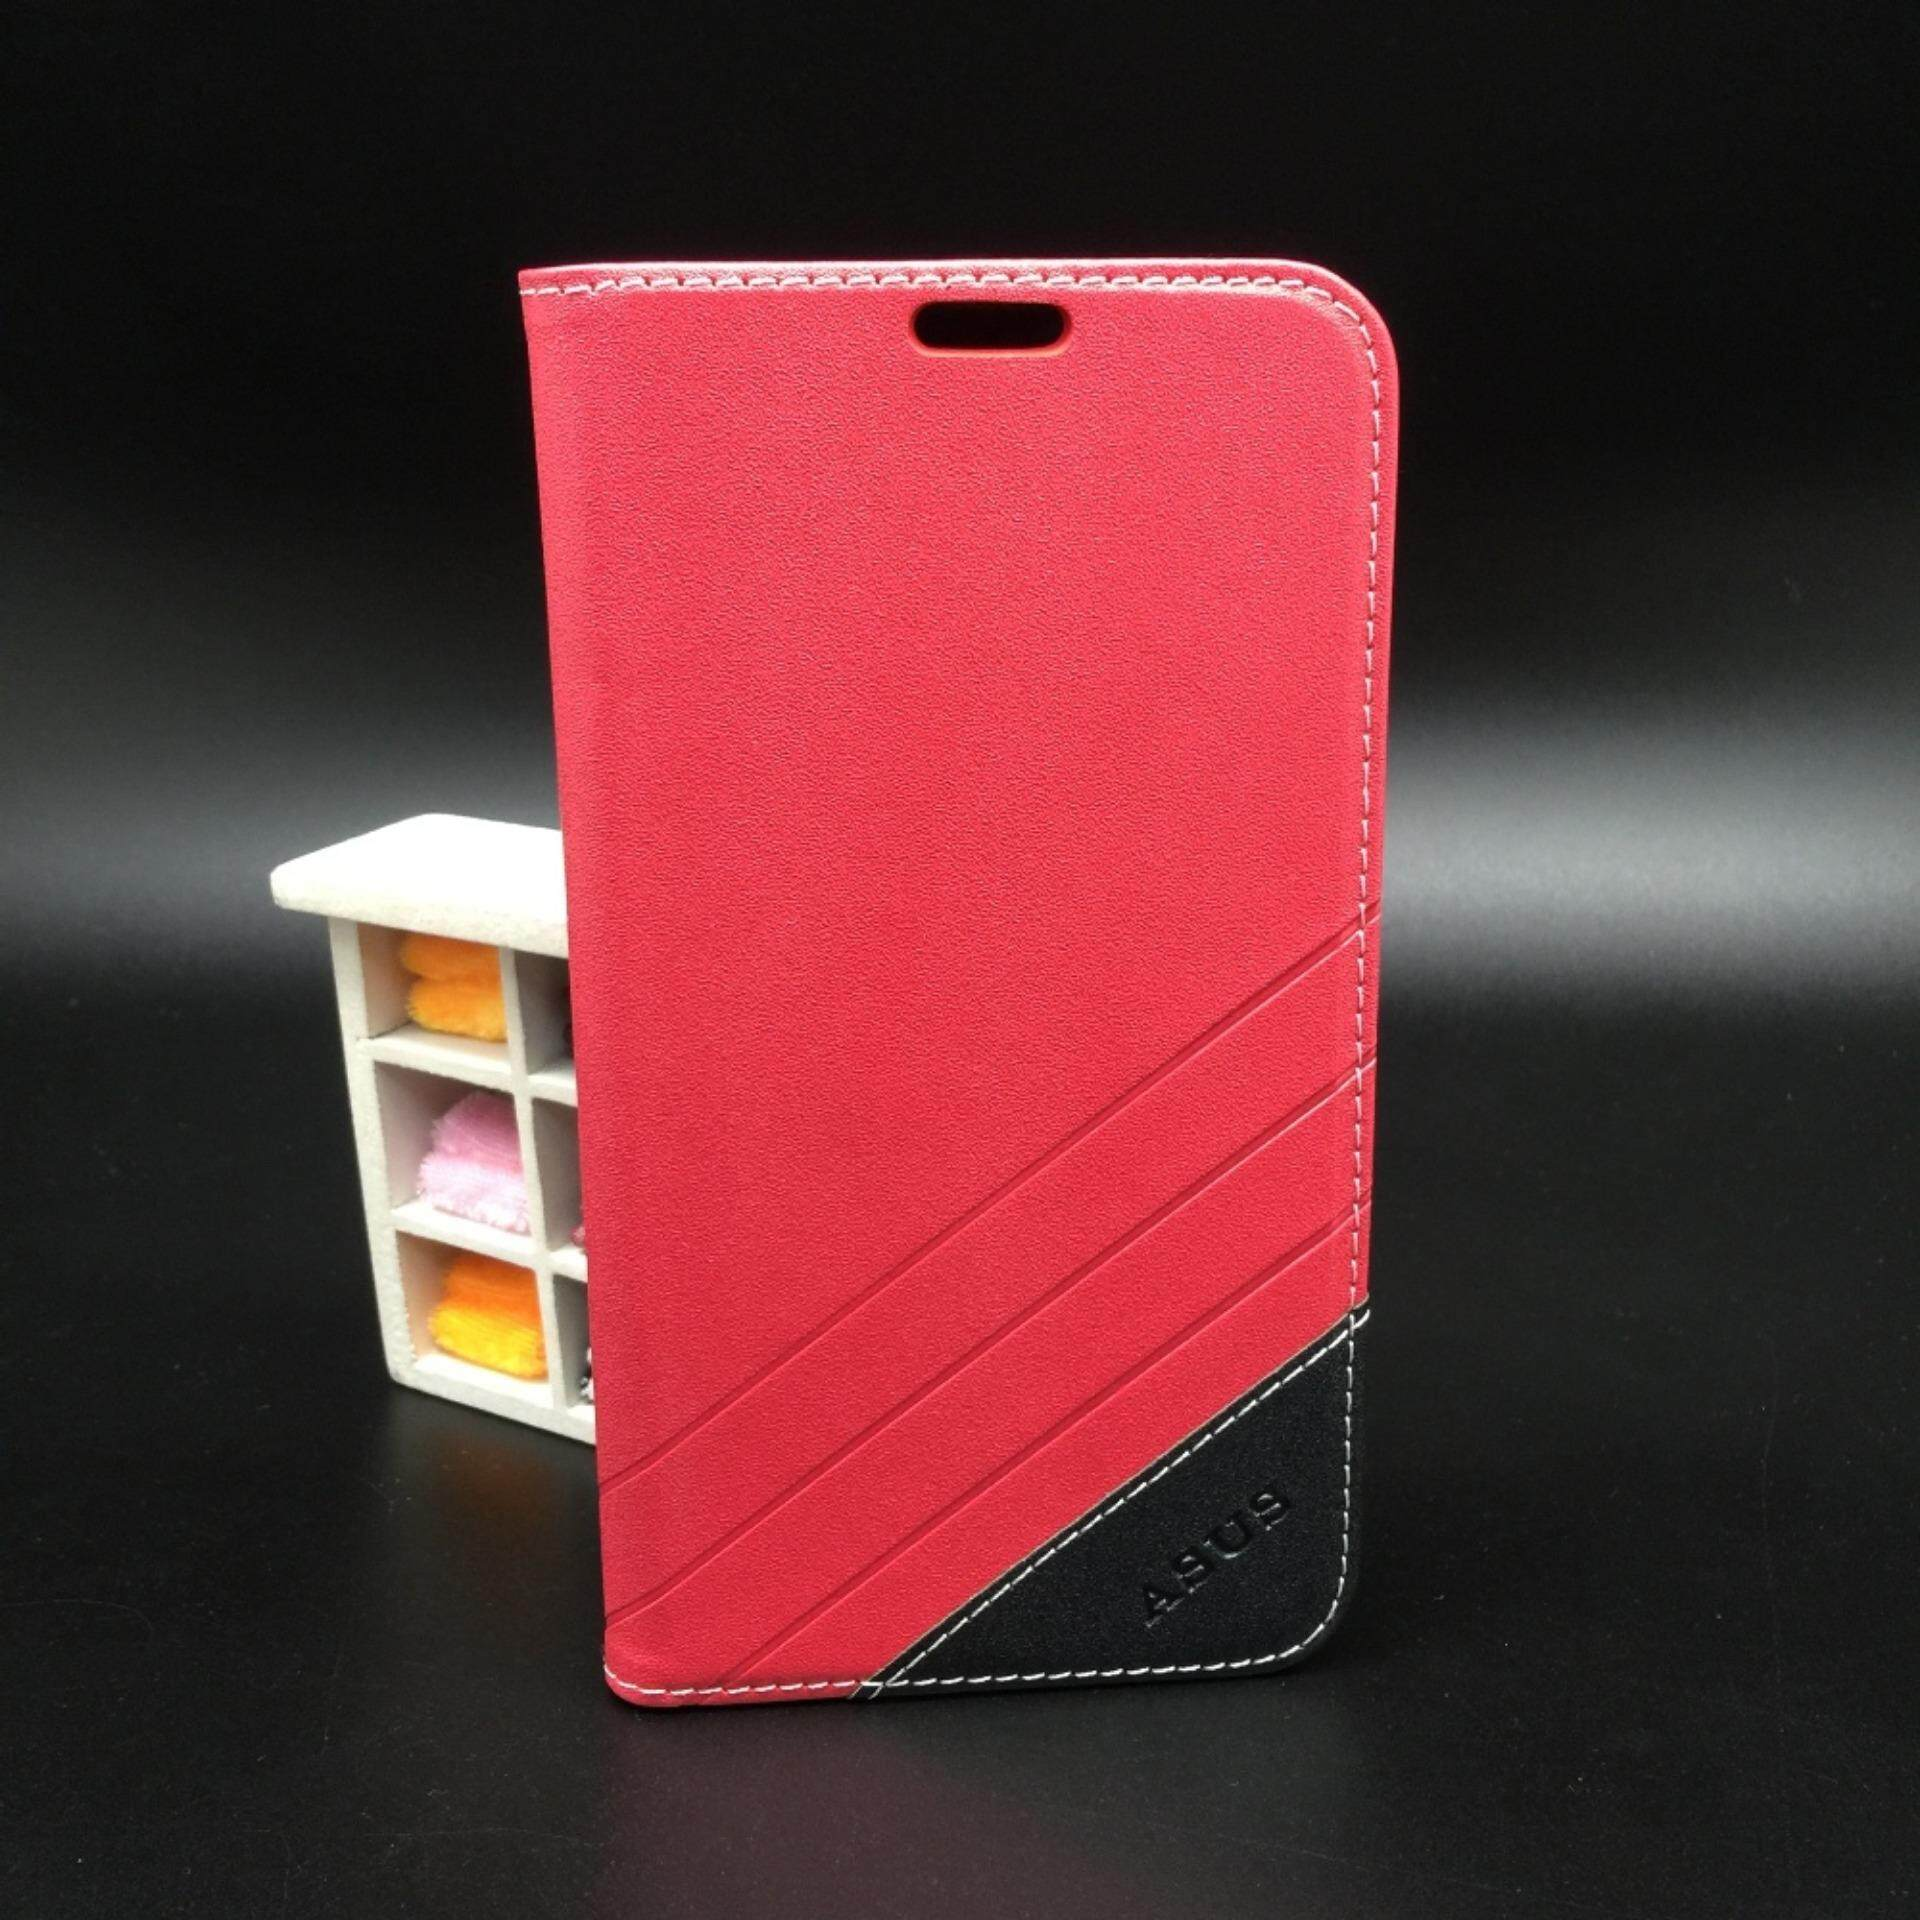 Asus Tablet Cases Covers Price In Malaysia Best Back Case Zenfone 6 A600cg T00g Z002 Pouch Bag Red